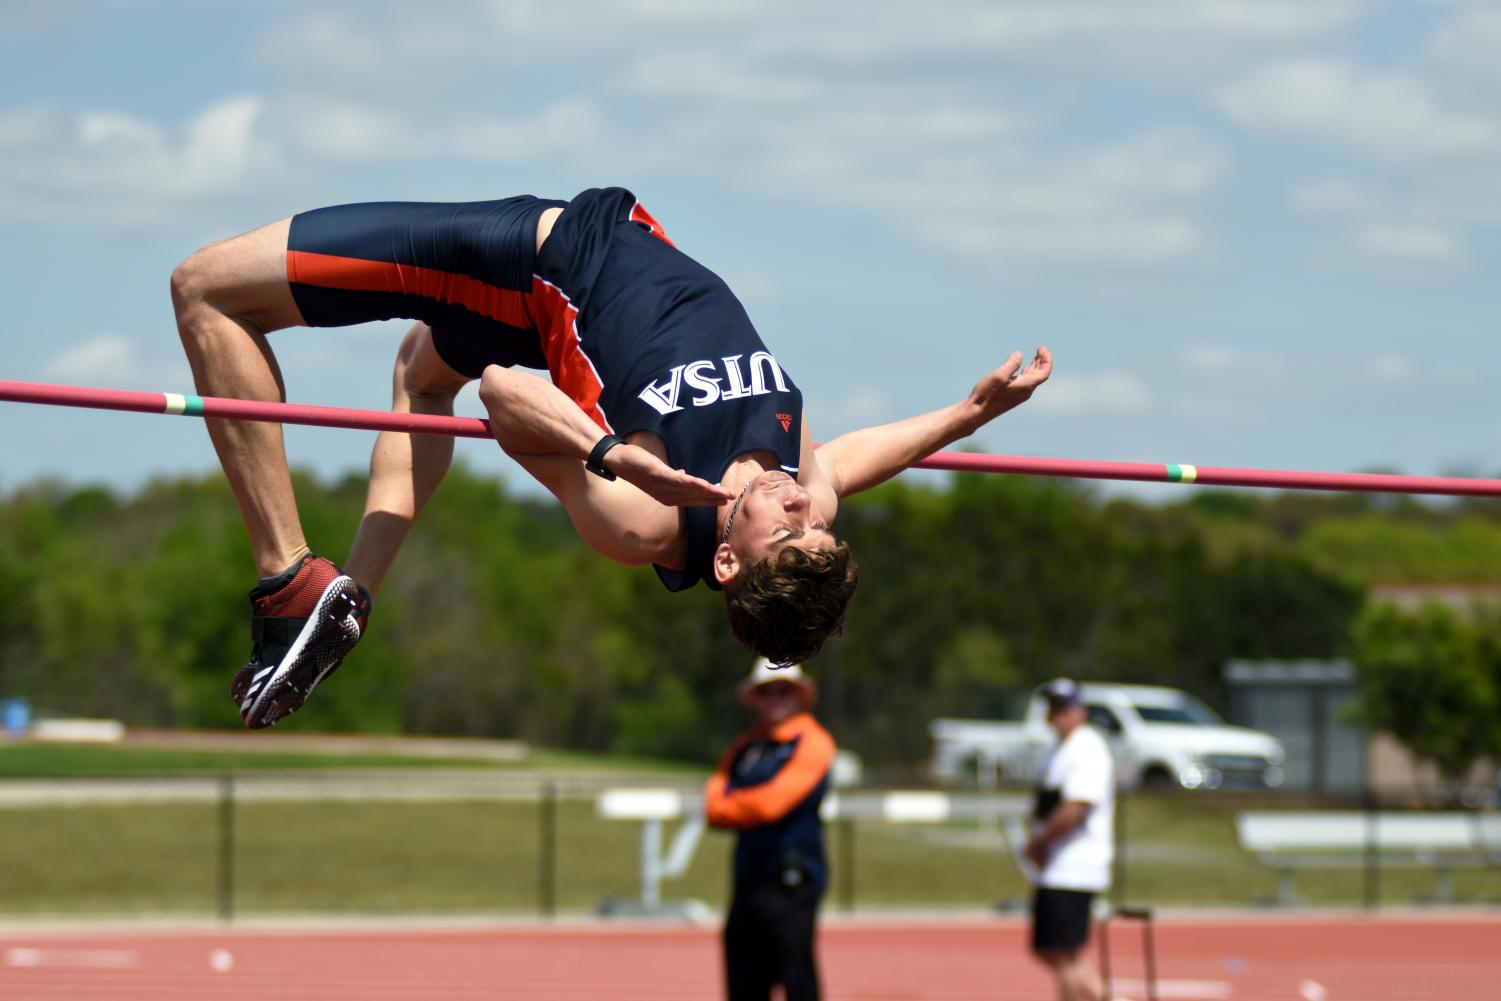 Jake McDaniel glides over the bar during high jump. Both track teams competed in the Houston G-5 and Mid-Major Invitational over the Jan. 31 weekend.